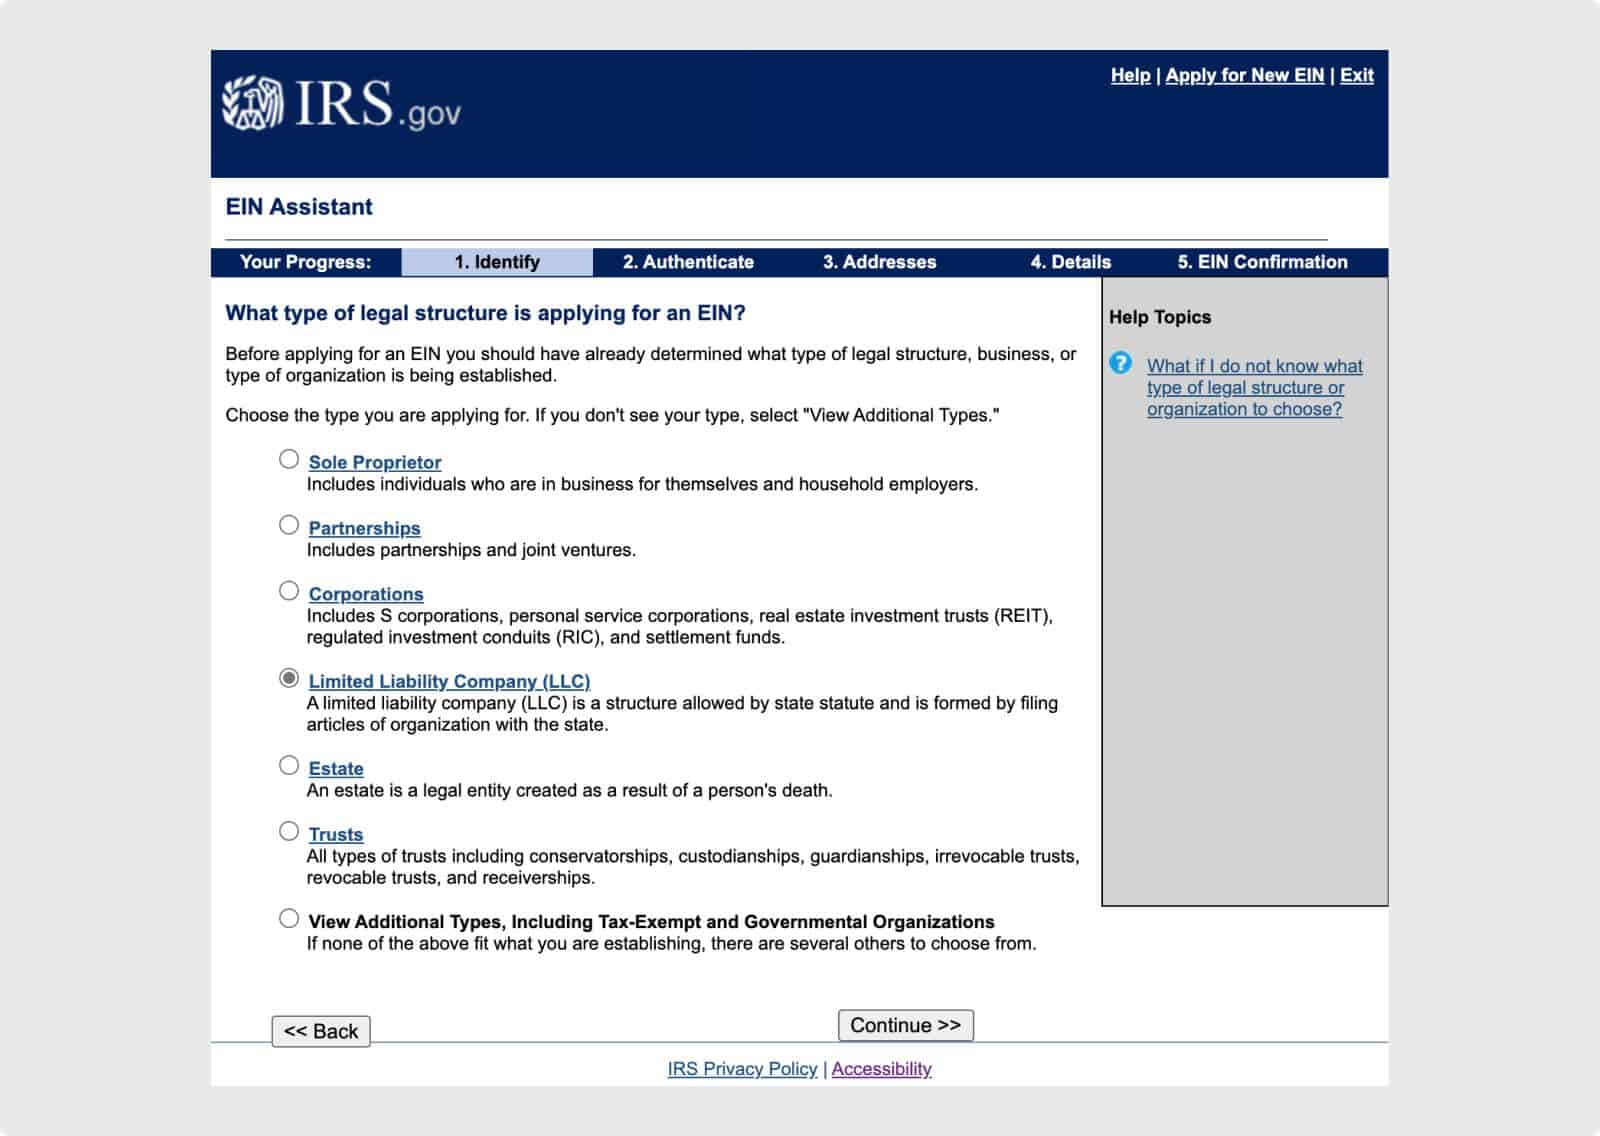 LLCs will need an EIN from the IRS to open a business account and hire employees